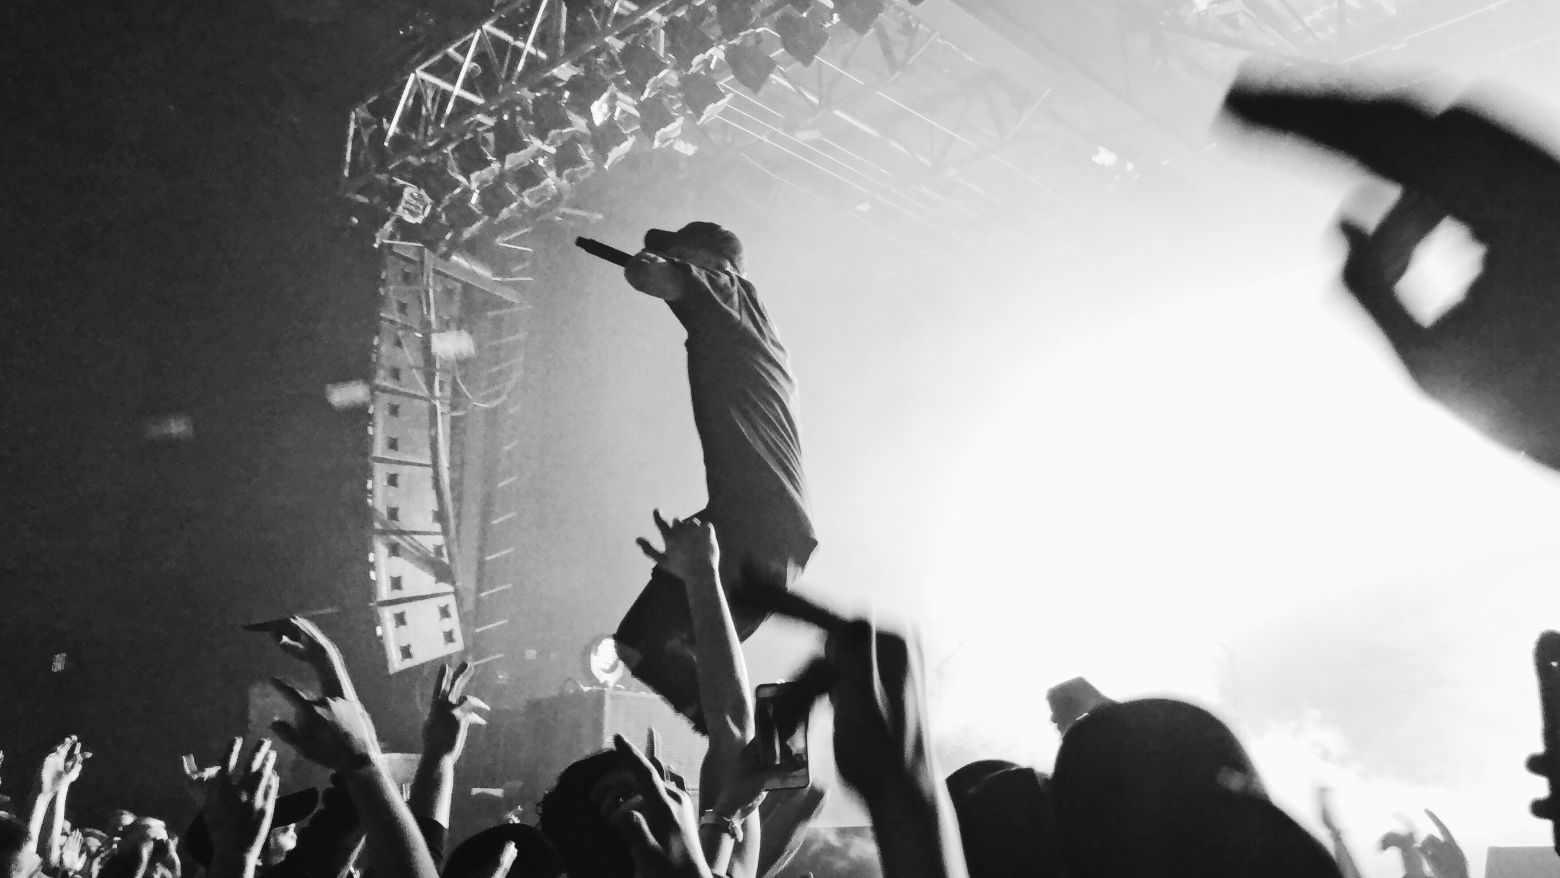 Nf Perception Tour A Review Of Real Music Live Nf Real Music